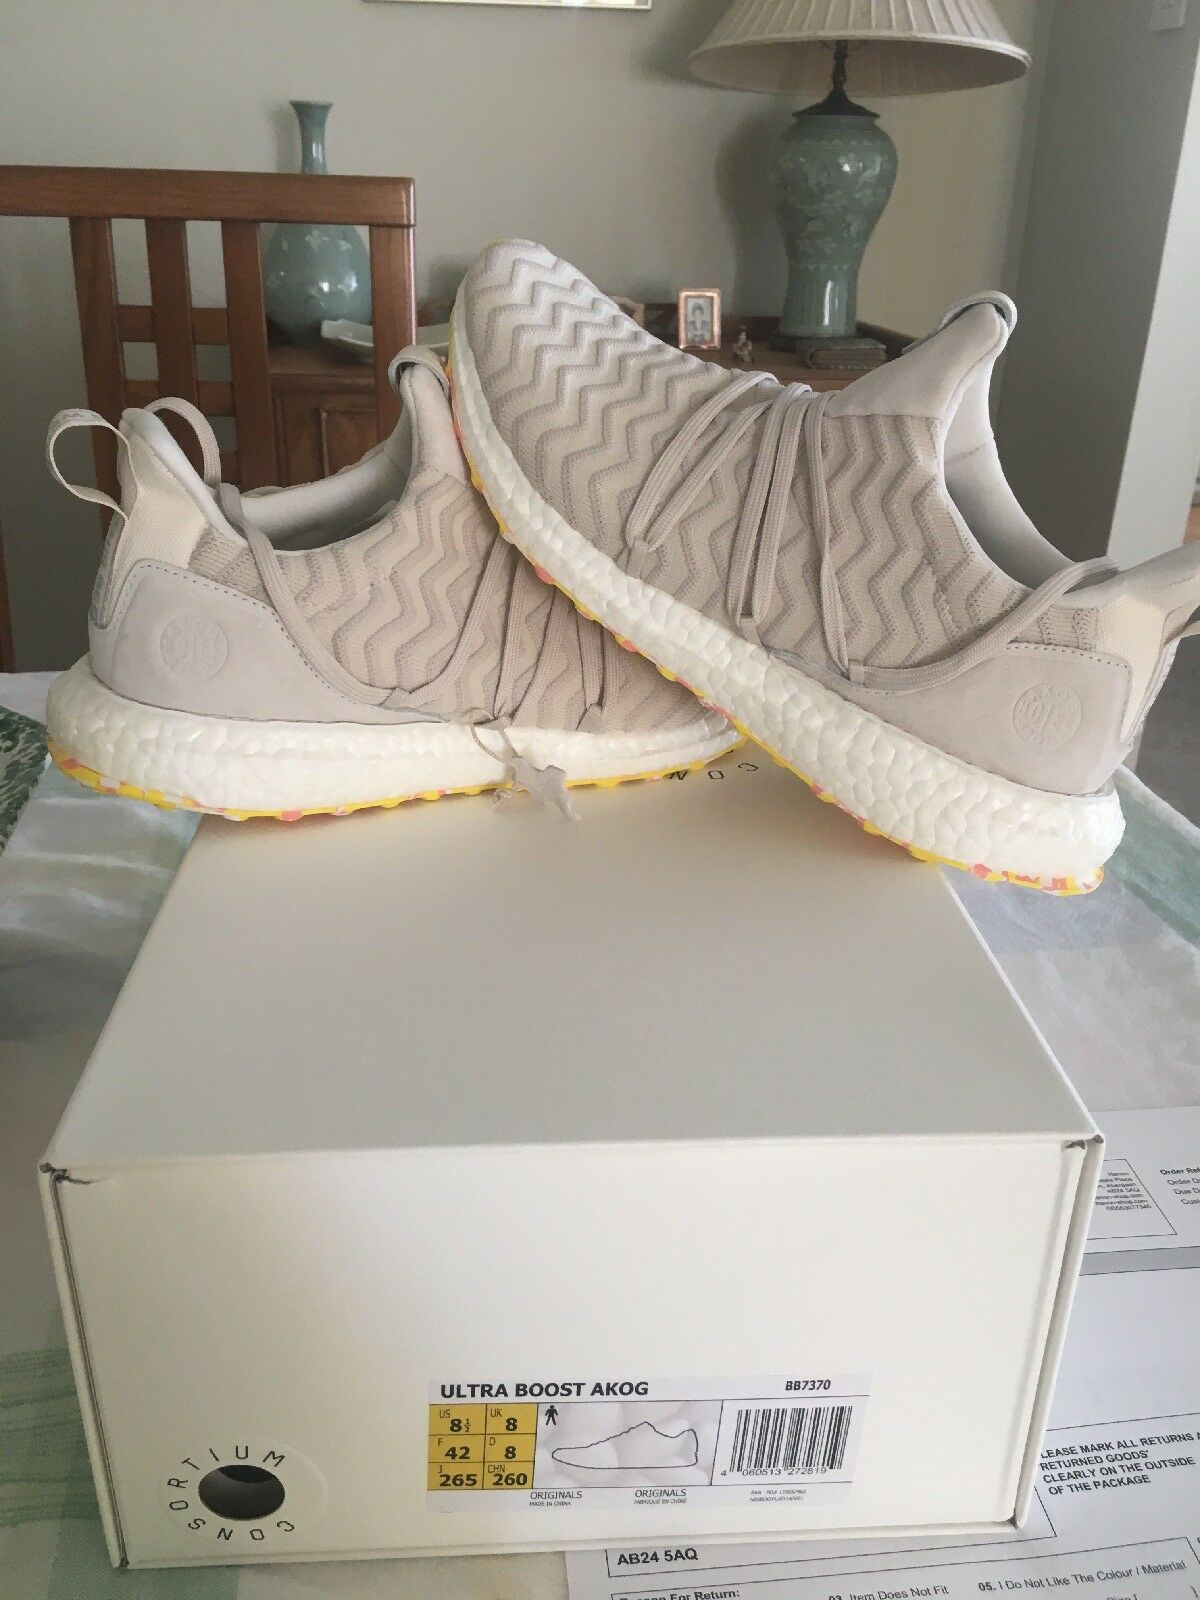 A Kind Of Guise x Adidas Ultra Boost Consortium Sz 8.5 US Sz 8 UK AKOG In Hand